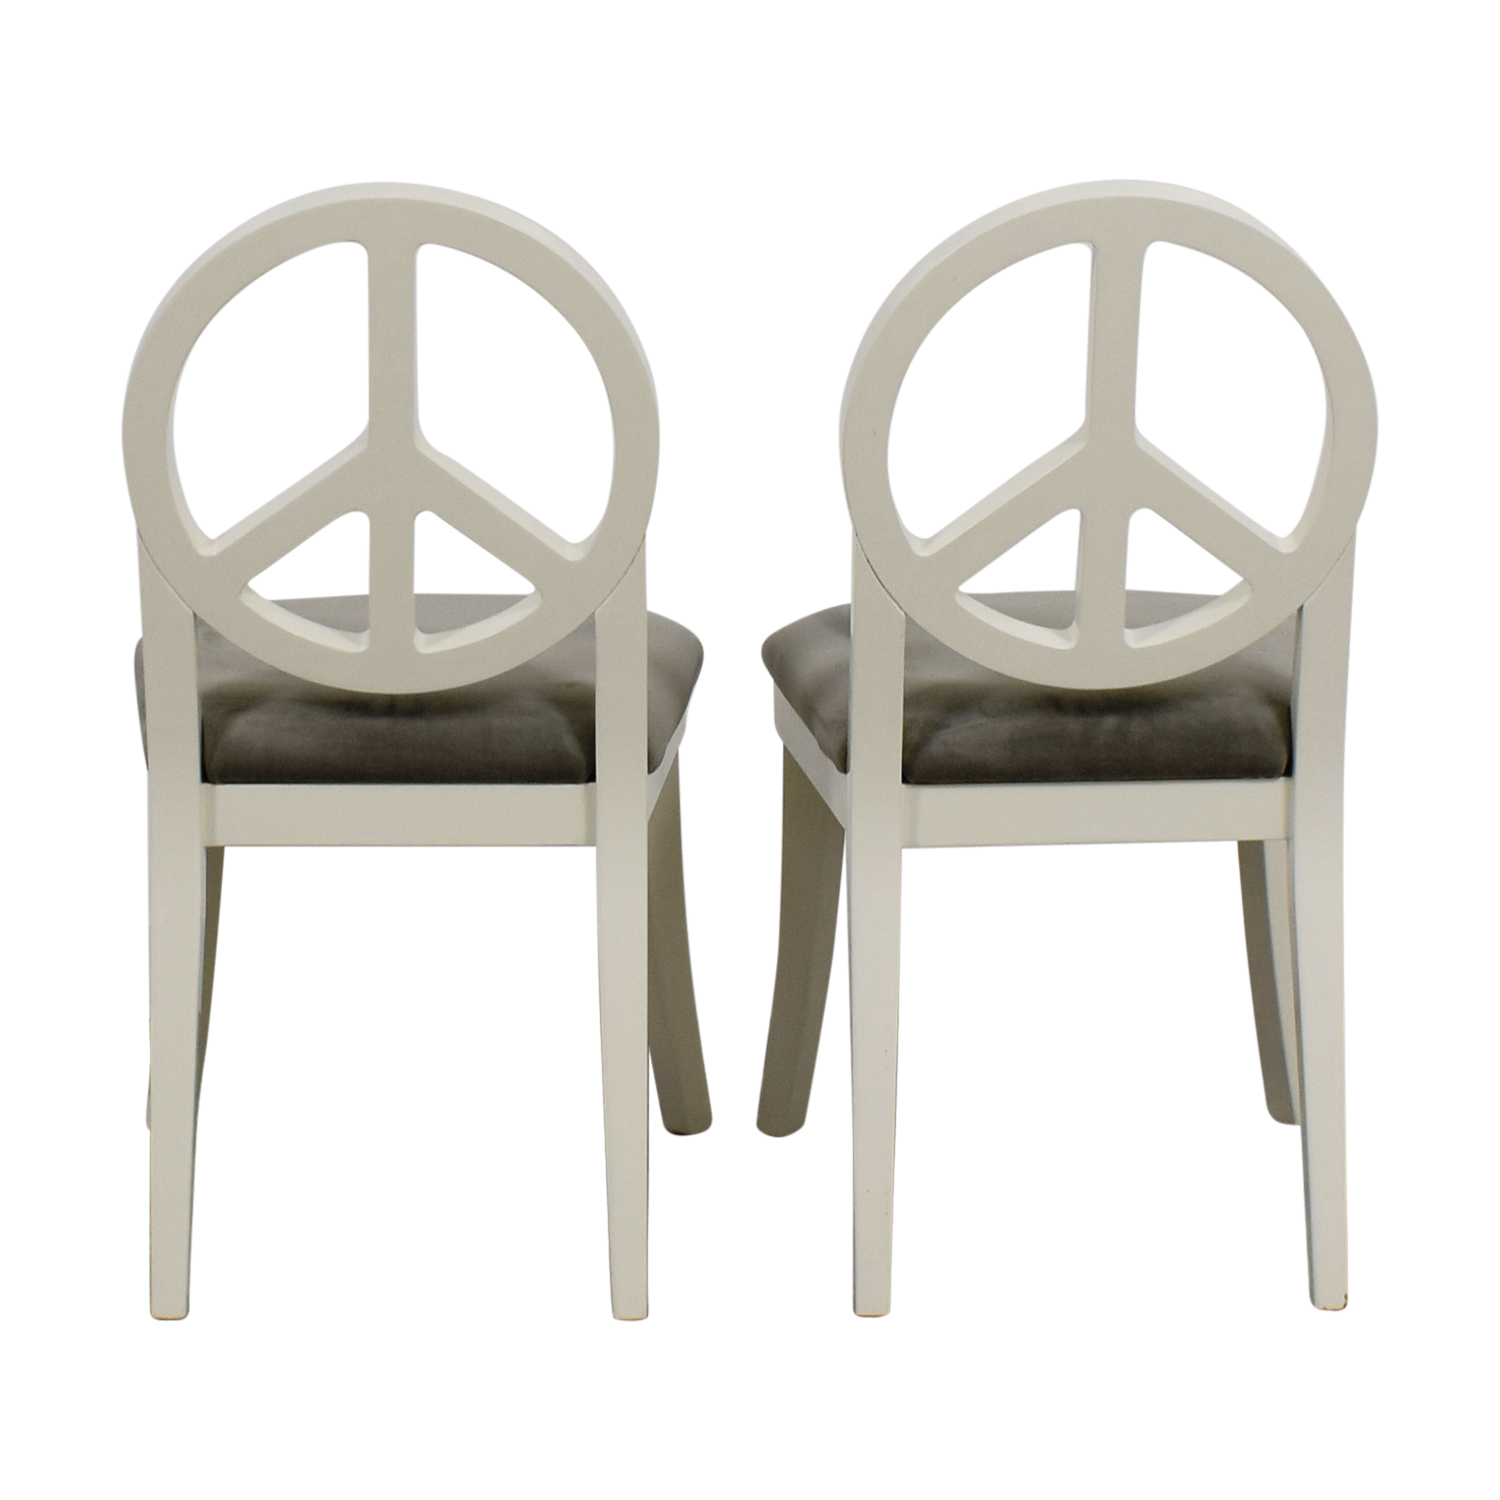 buy Happy Chic by Jonathan Adler White and Grey Peace Sign Accent Chairs Happy Chic by Jonathan Adler